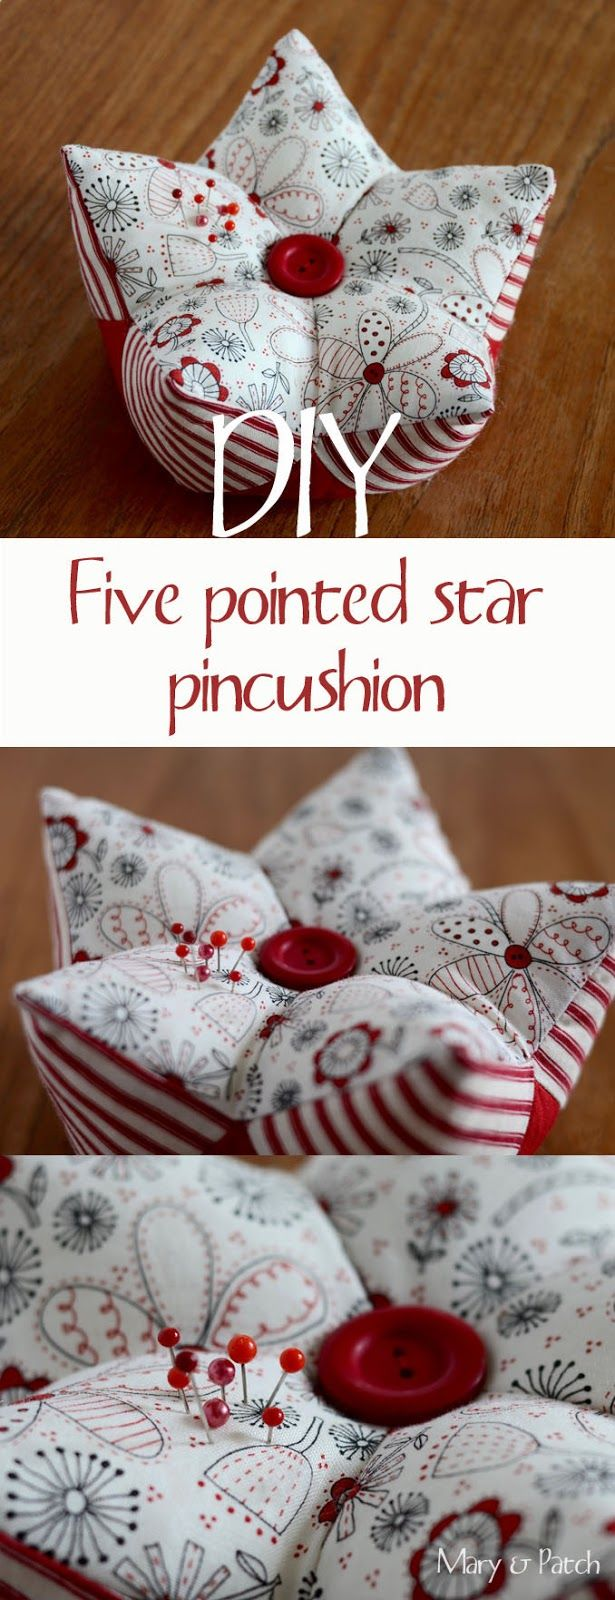 Maryandpatch, 3D patchwork, five pointed star pincushion                                                                                                                                                                                 More